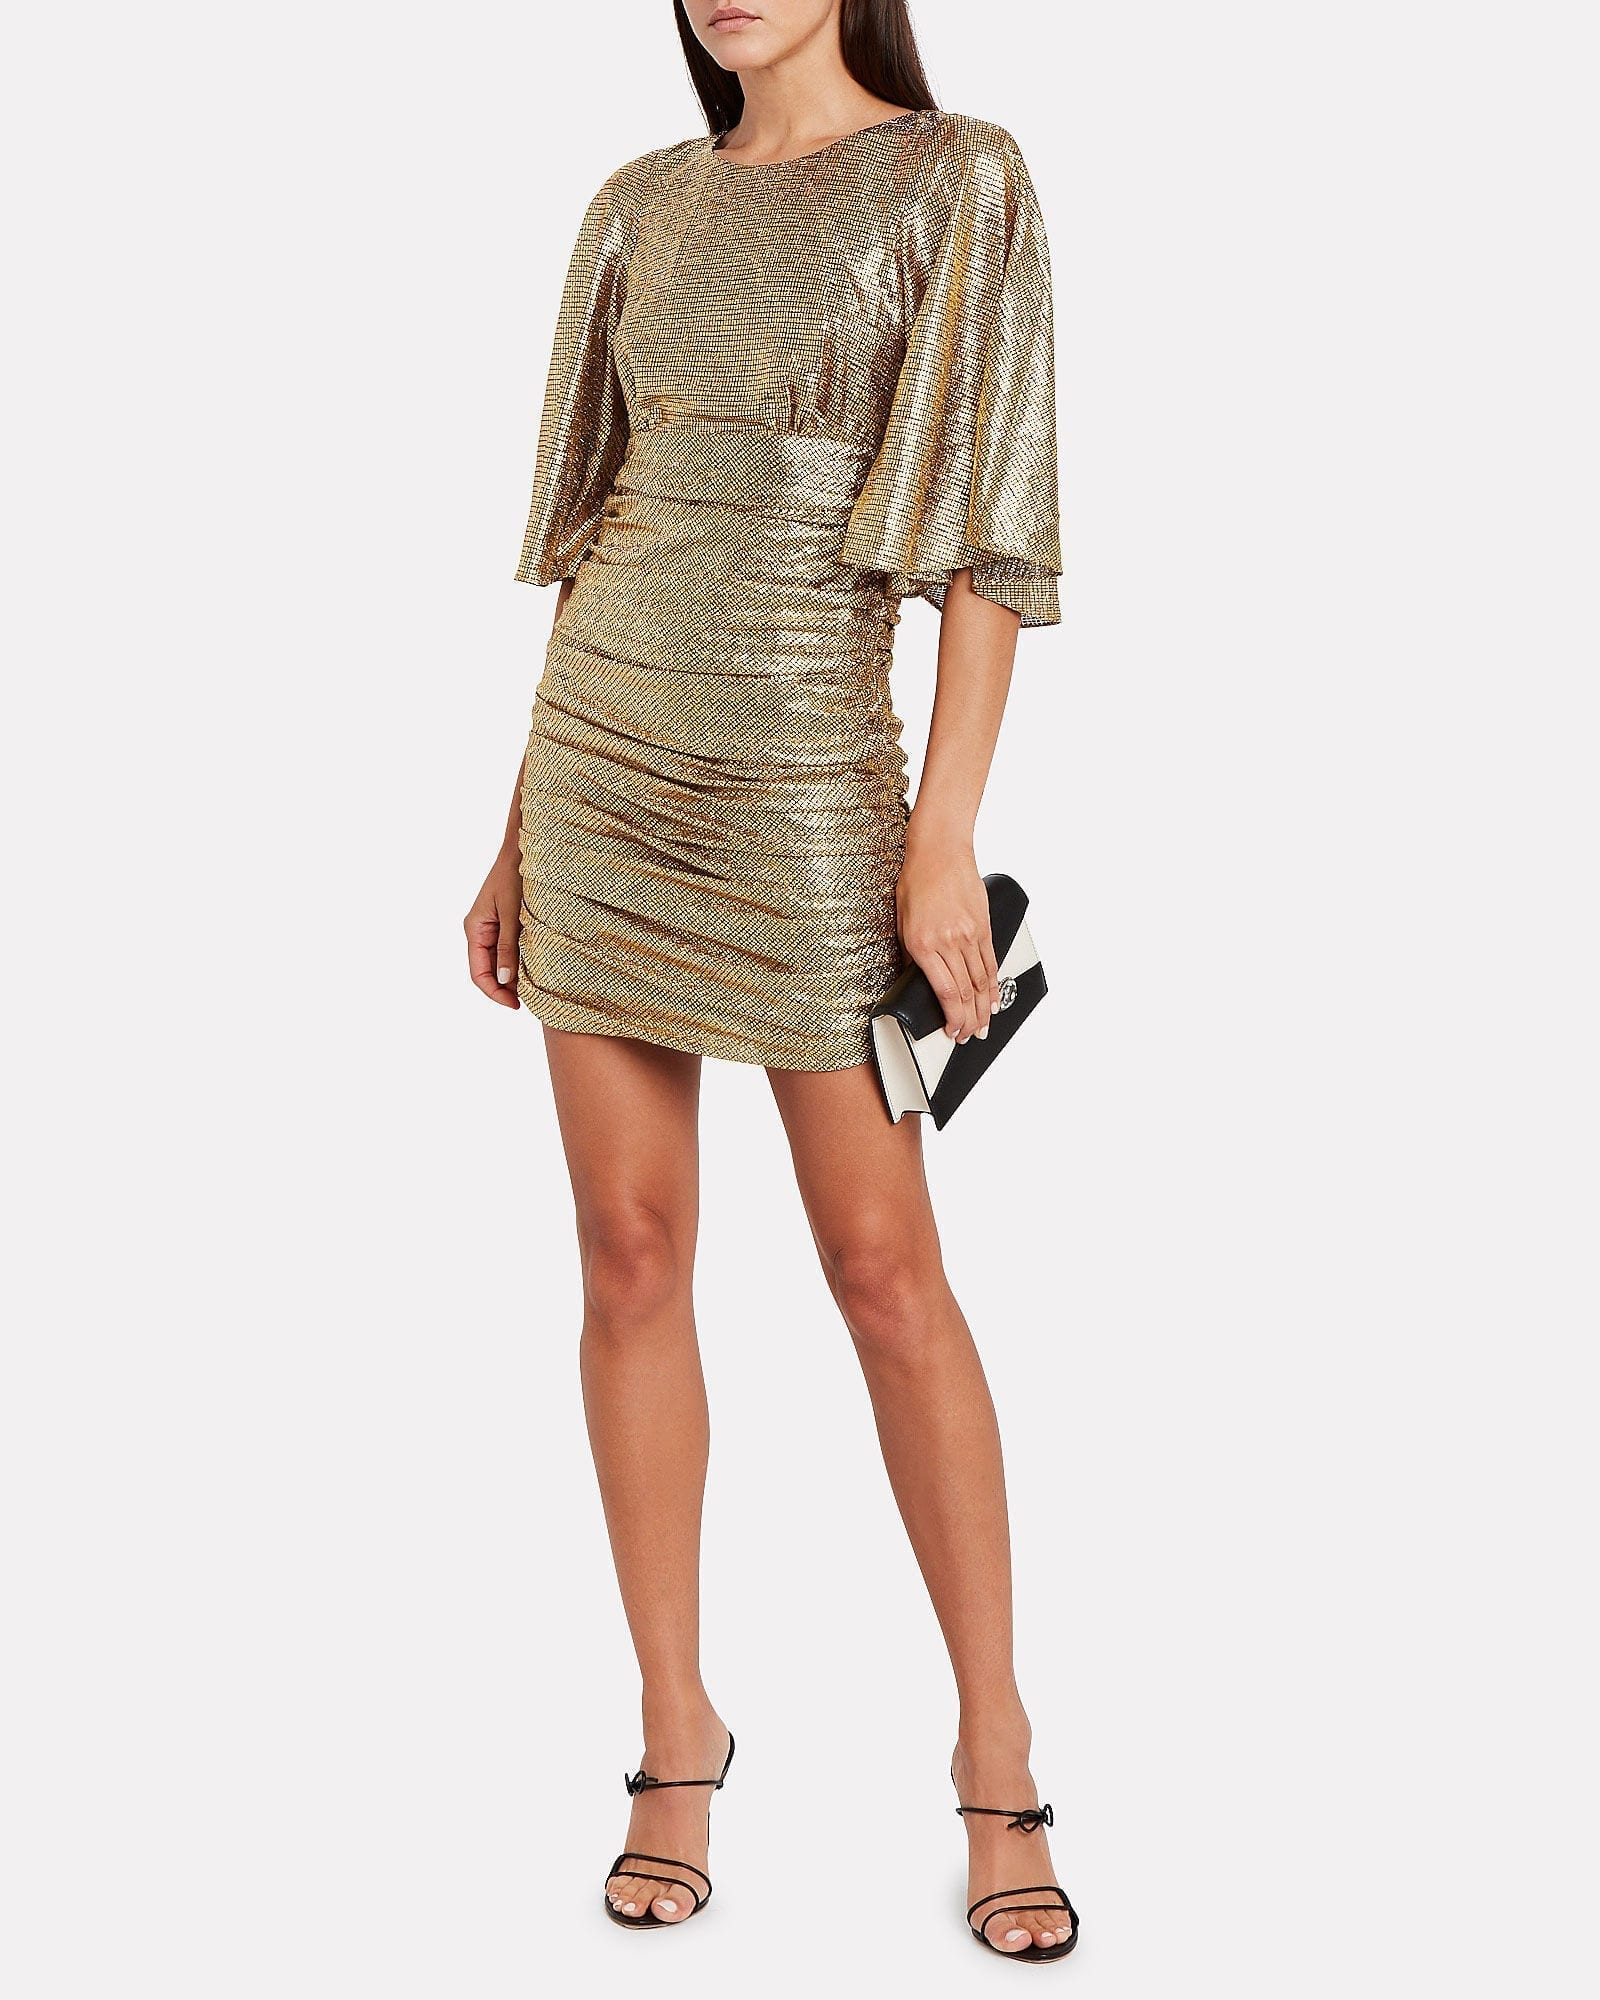 SHONA JOY Cleo Ruched Metallic Mini Dress